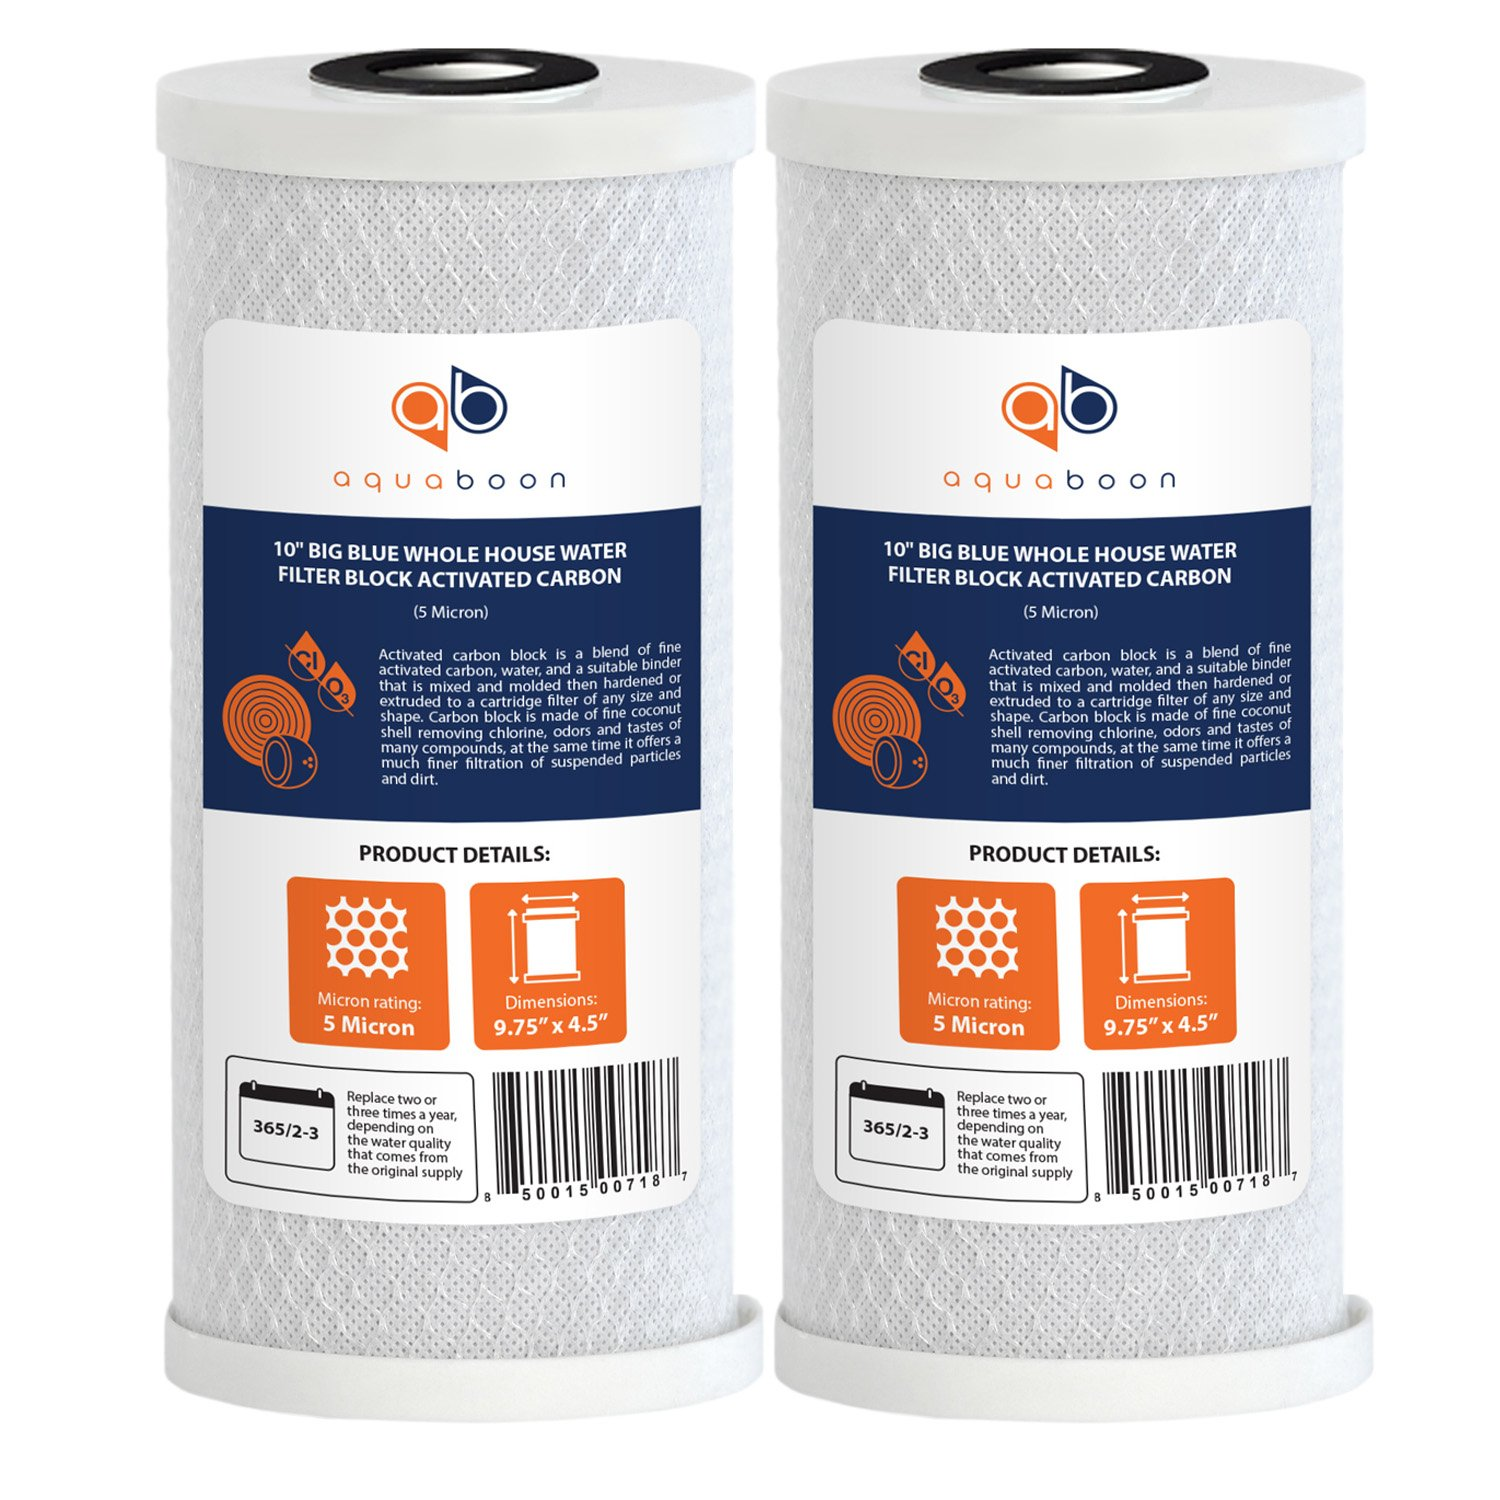 Aquaboon 2-PACK Of 5 Micron Big Blue Coconut Shell Carbon Block Water Filter Cartridge 10'' x 4.5'' by